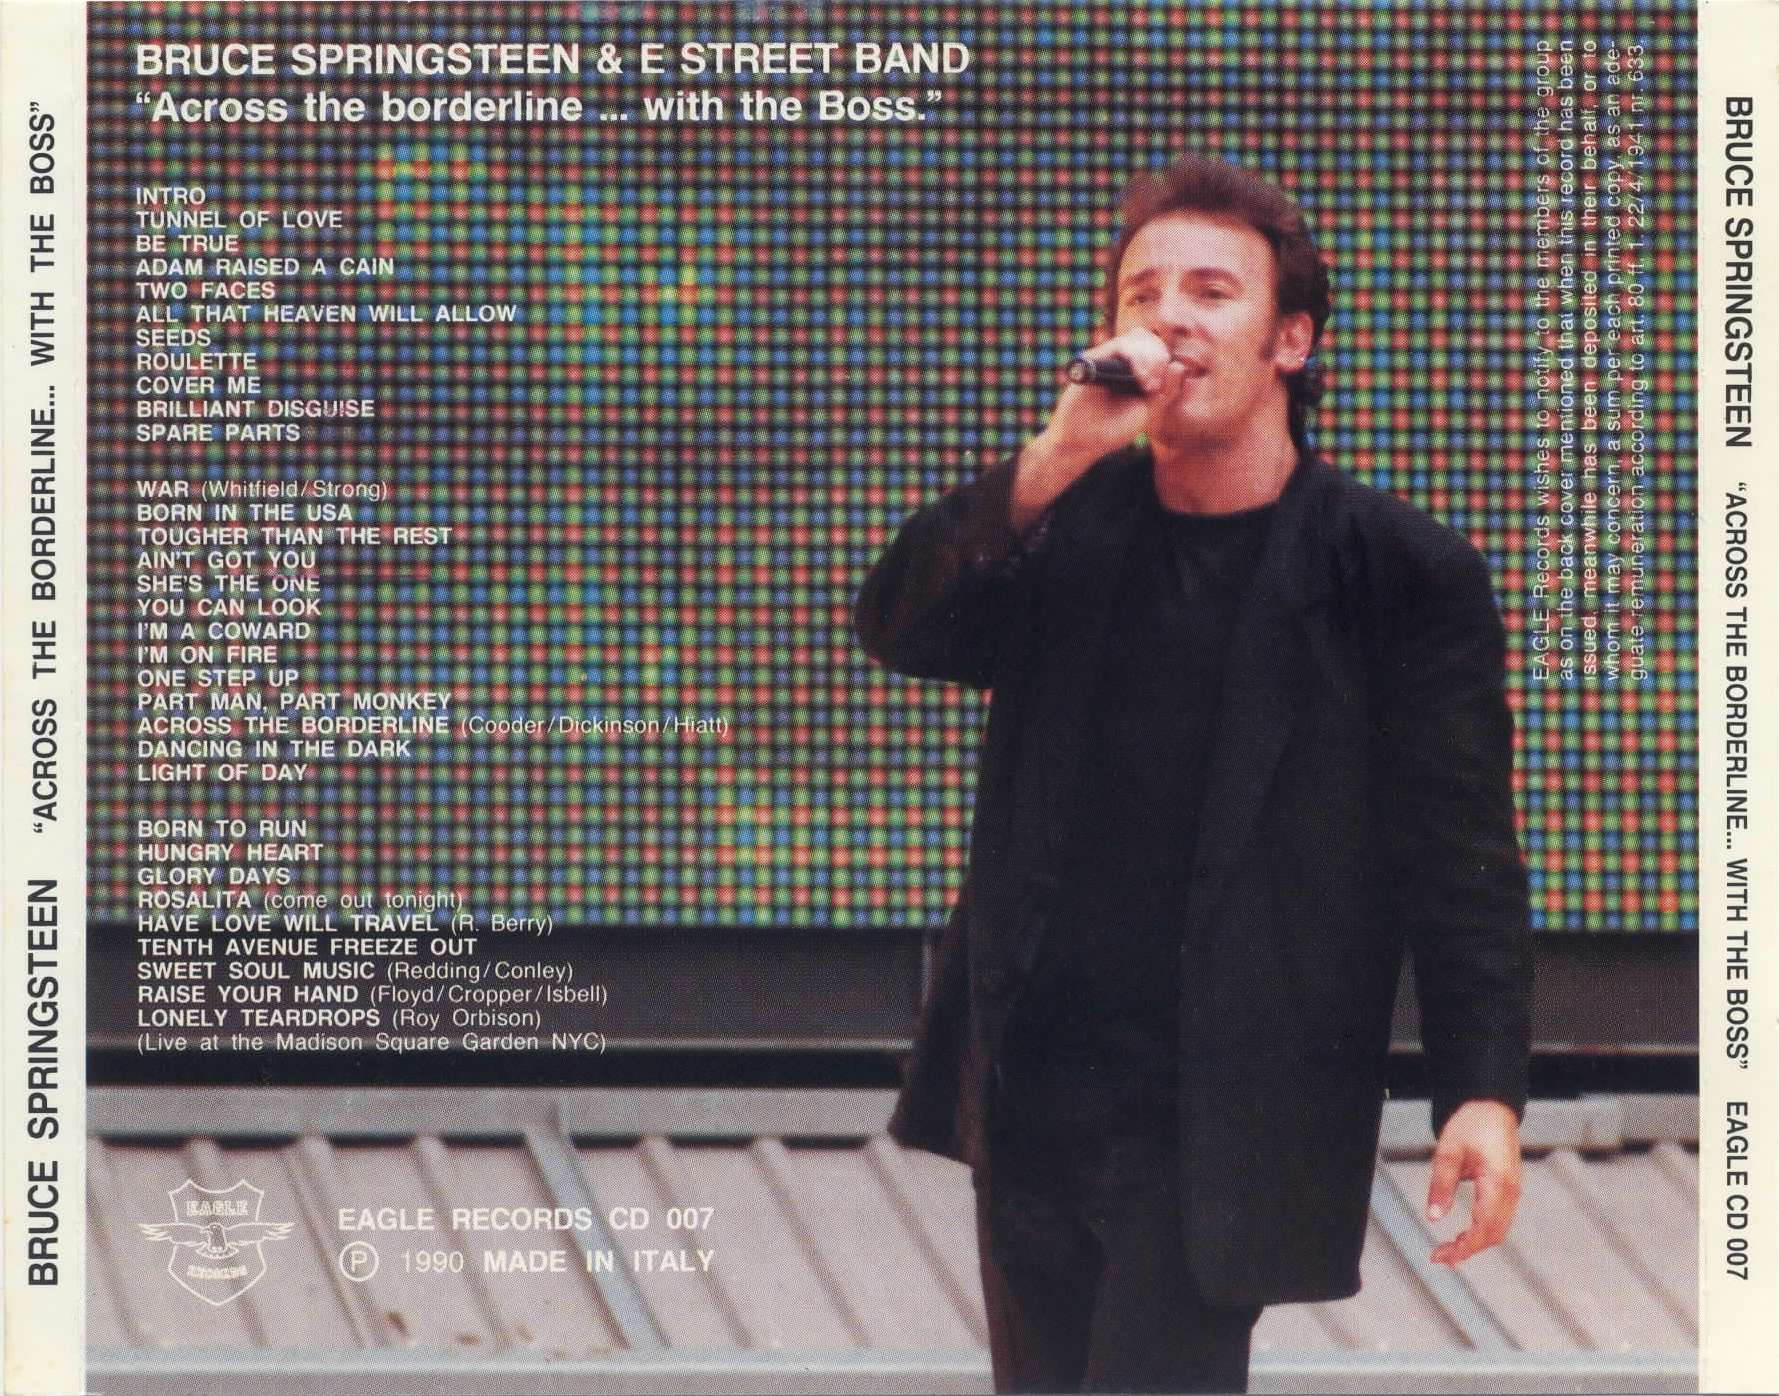 Bruce Springsteen and The E Street Band - Across The Borderline With The Boss - Back